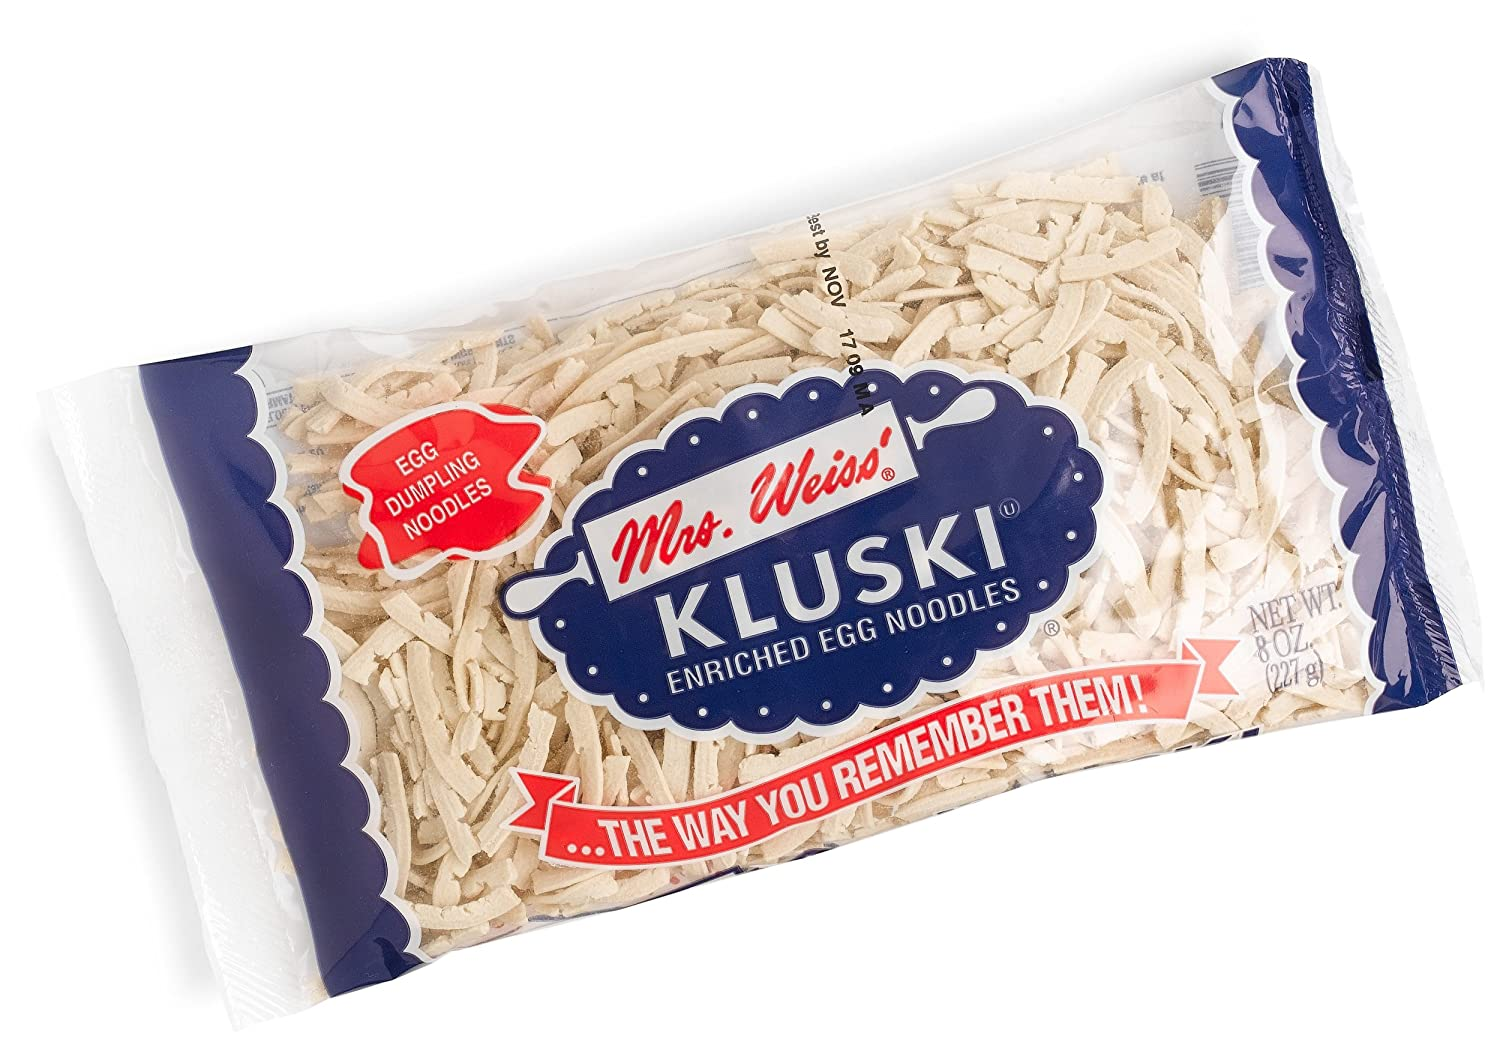 Mrs. Weiss Kluski Enriched Egg Dumpling Noodles, 8-Ounce Packages (Pack of 12)